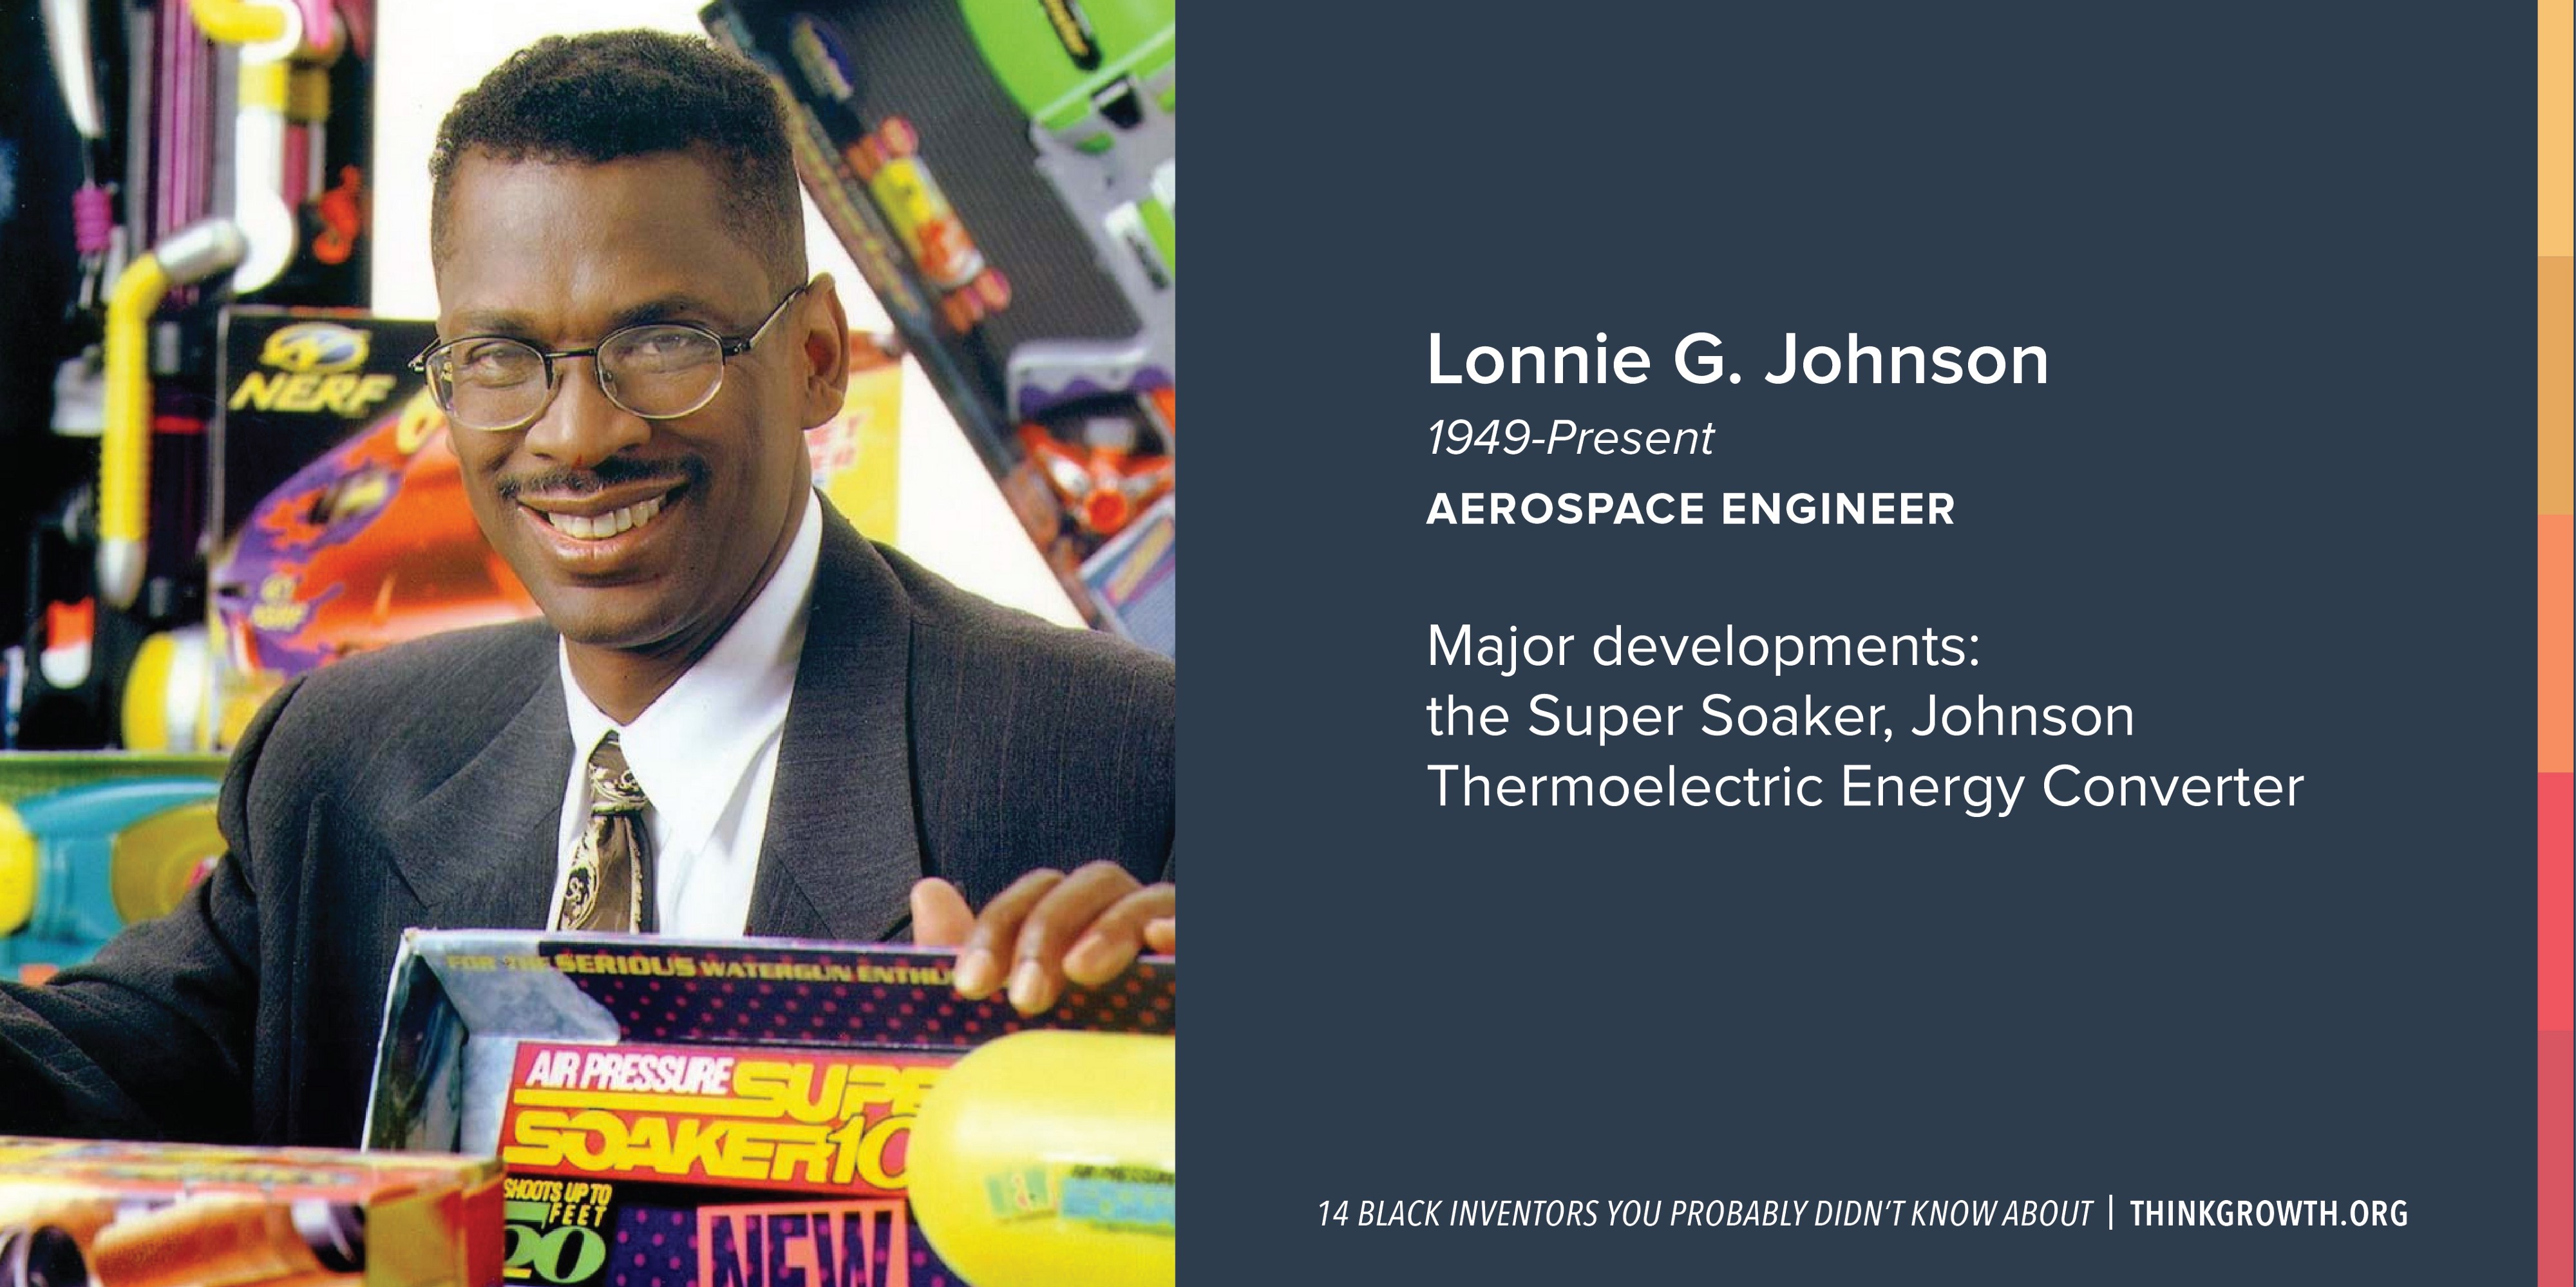 14 Black Inventors You Probably Didn't Know About | by Pamela Rosario Pérez | ThinkGrowth.org